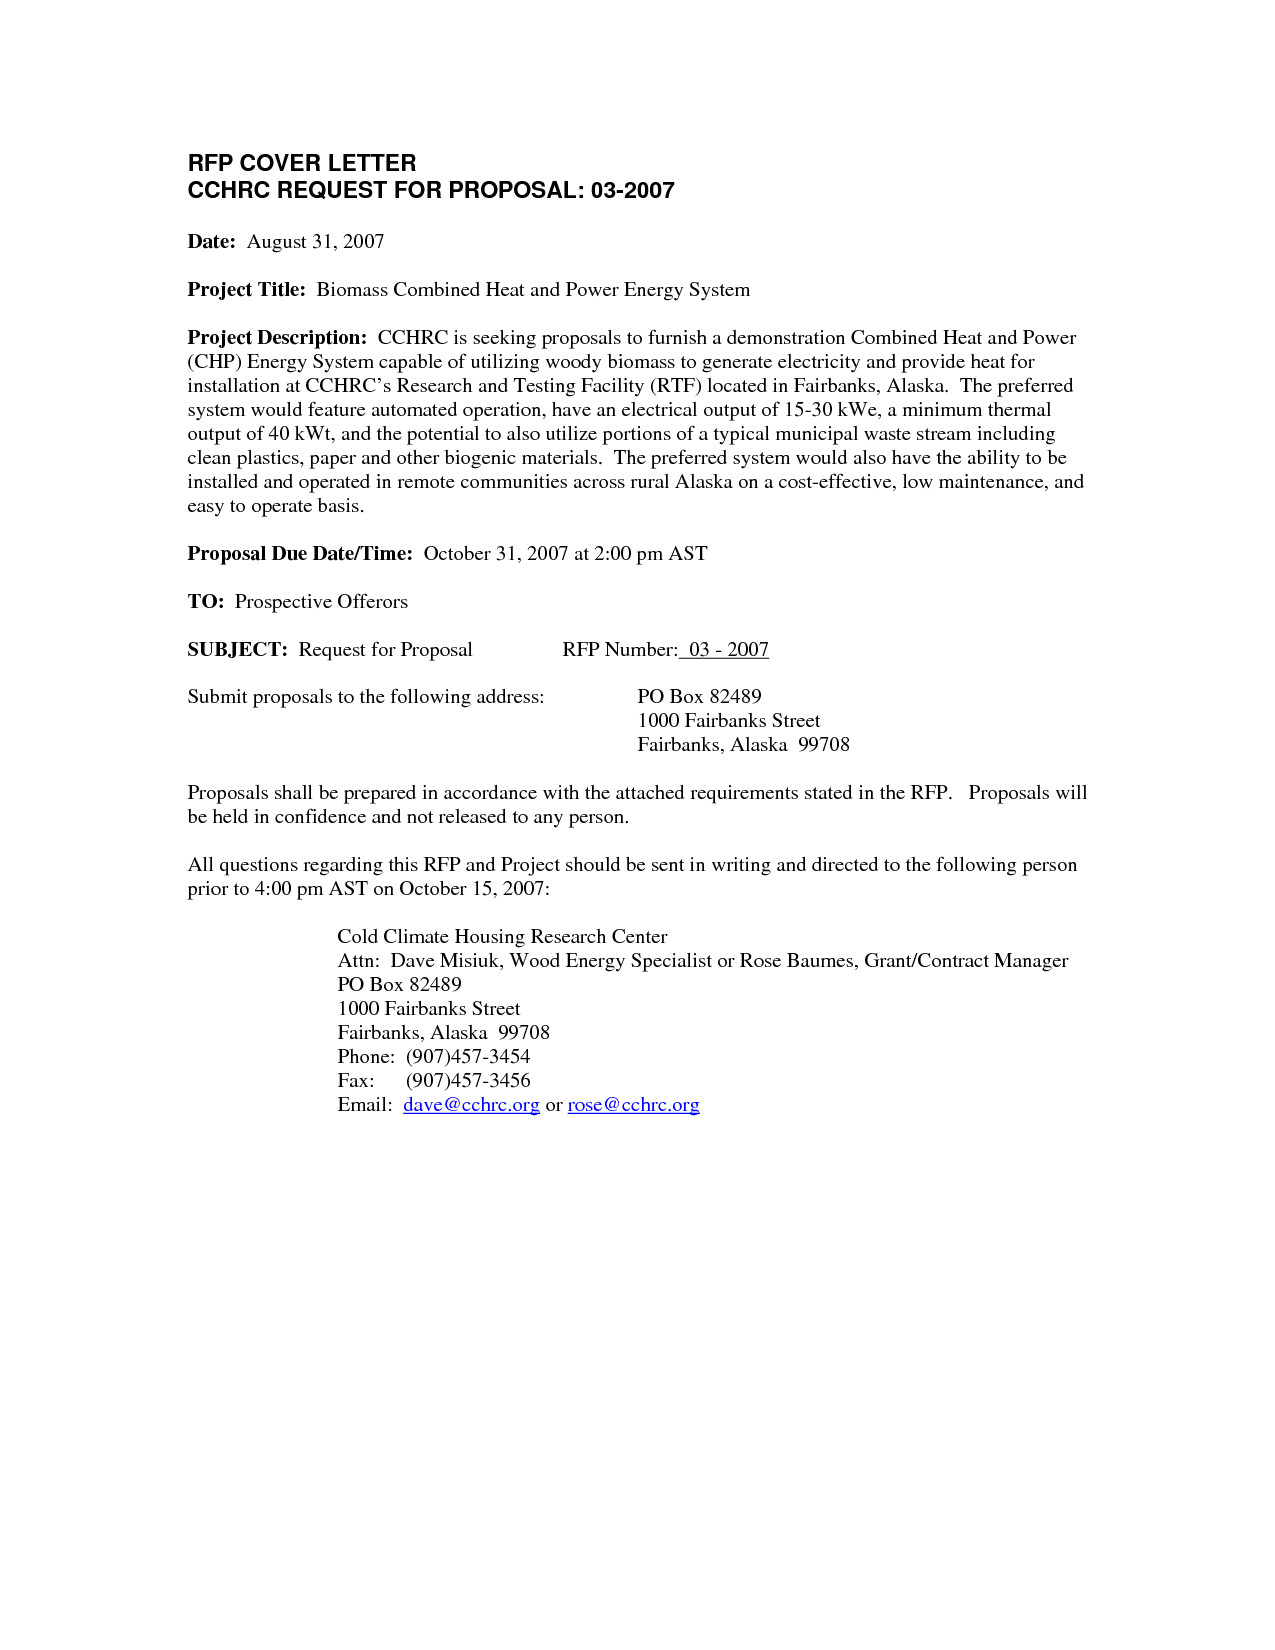 post request for proposal letter example 501616